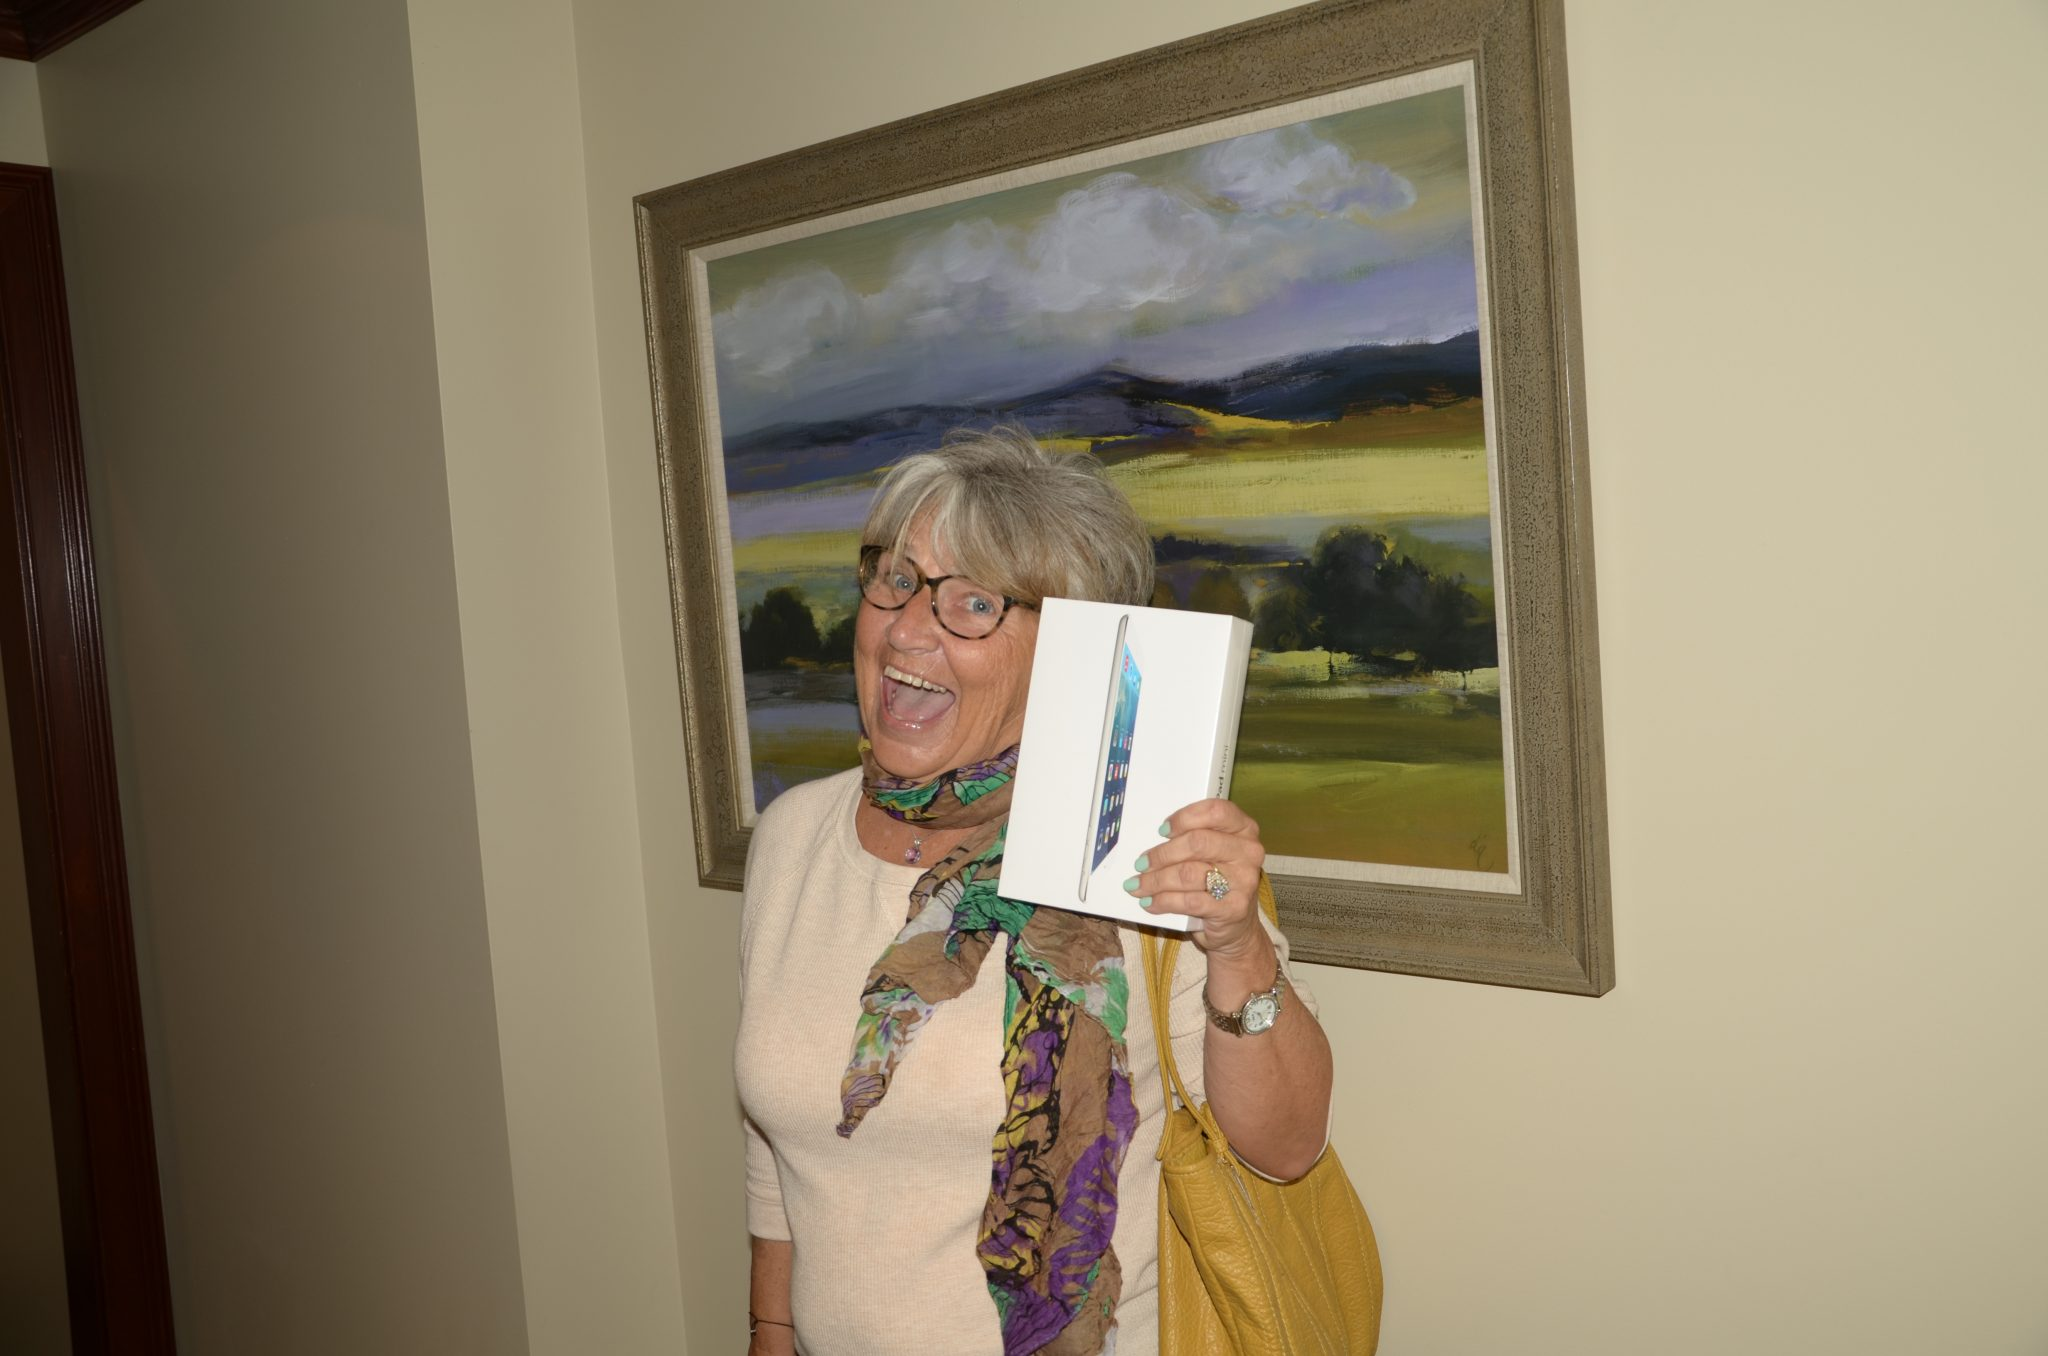 Our First Quarter Ipad Winner Advance Dentistry